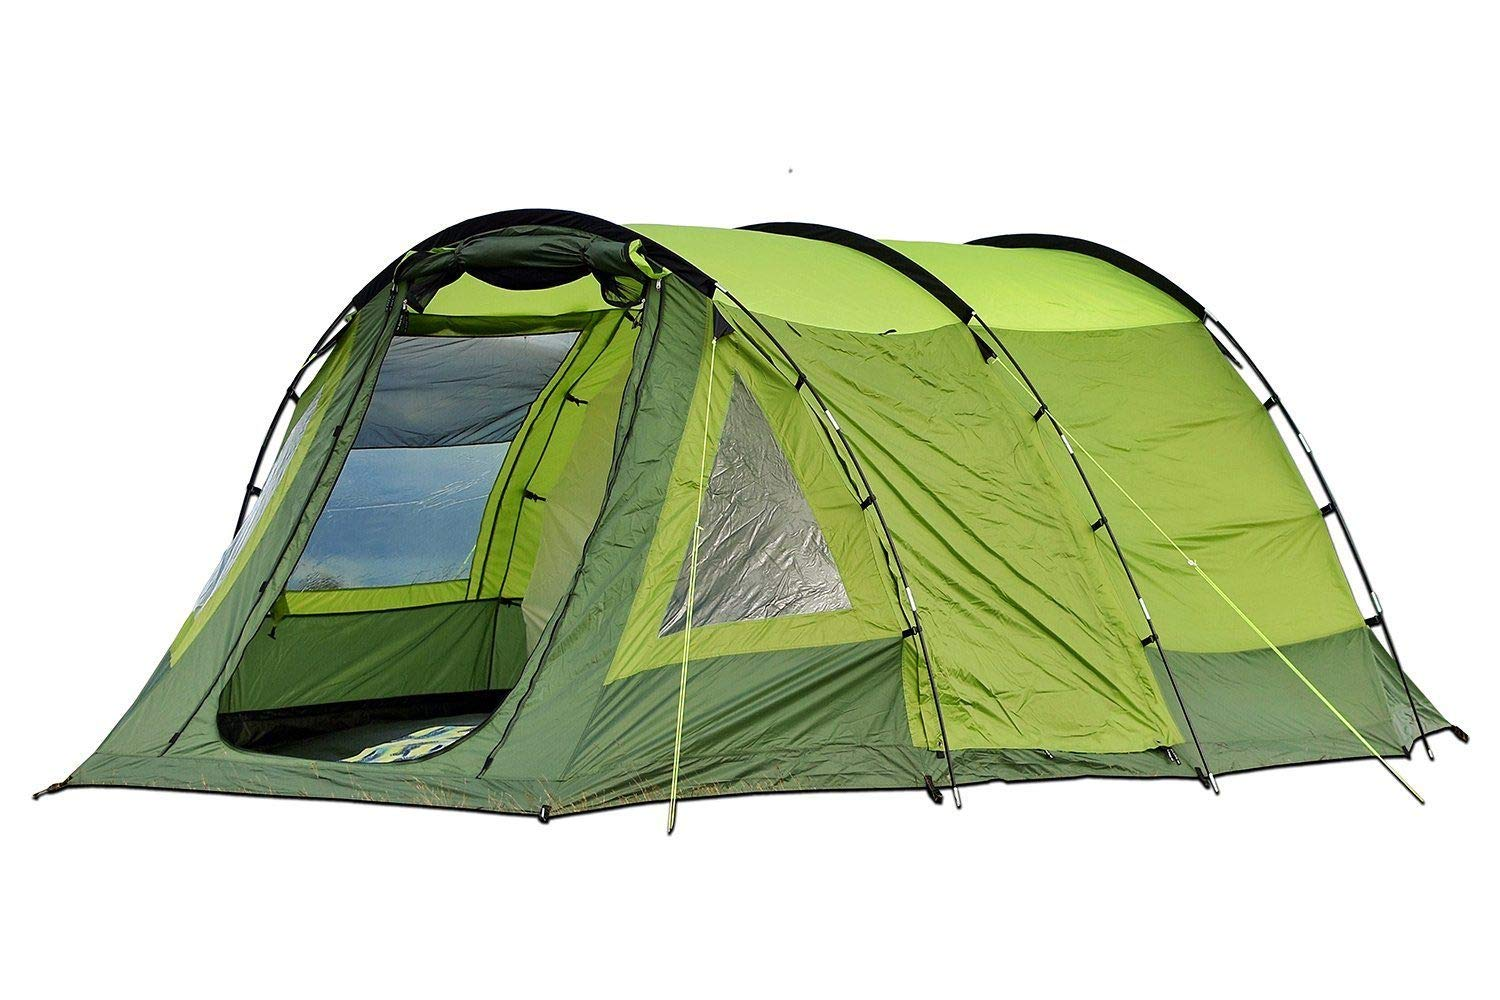 The Abberley XL - 4 ルーム Tent   B00OVUDXJK